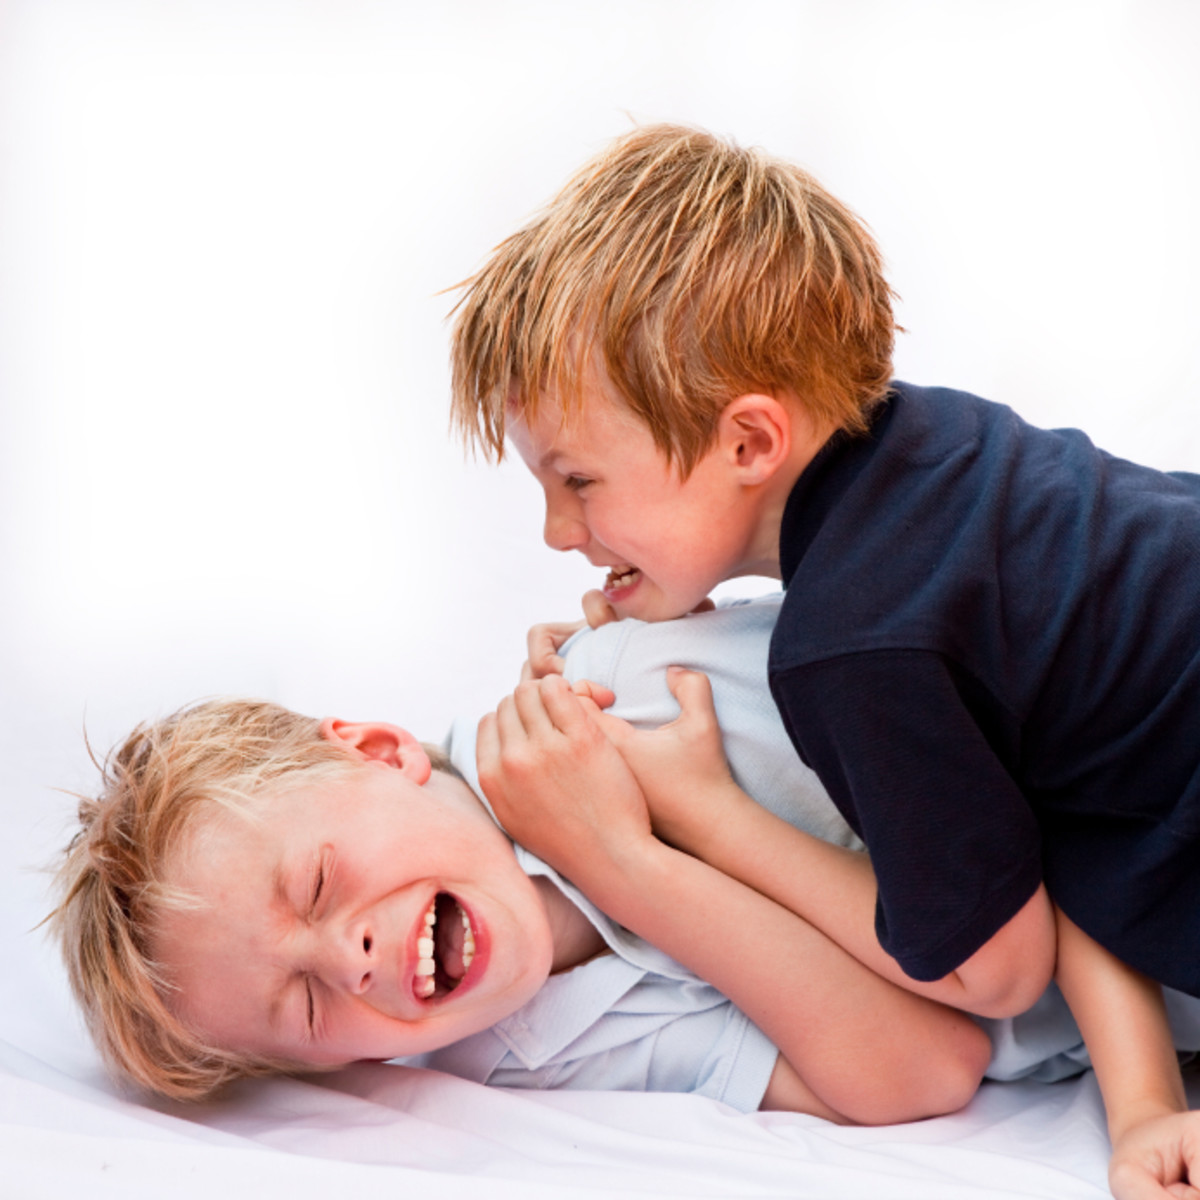 Because of the parental-familial dynamic of the multichild household, many siblings exhibit feelings of jealousy & other forms of animosity towards each other which is manifested in sibling rivalry & other forms of negative sibling behavior.